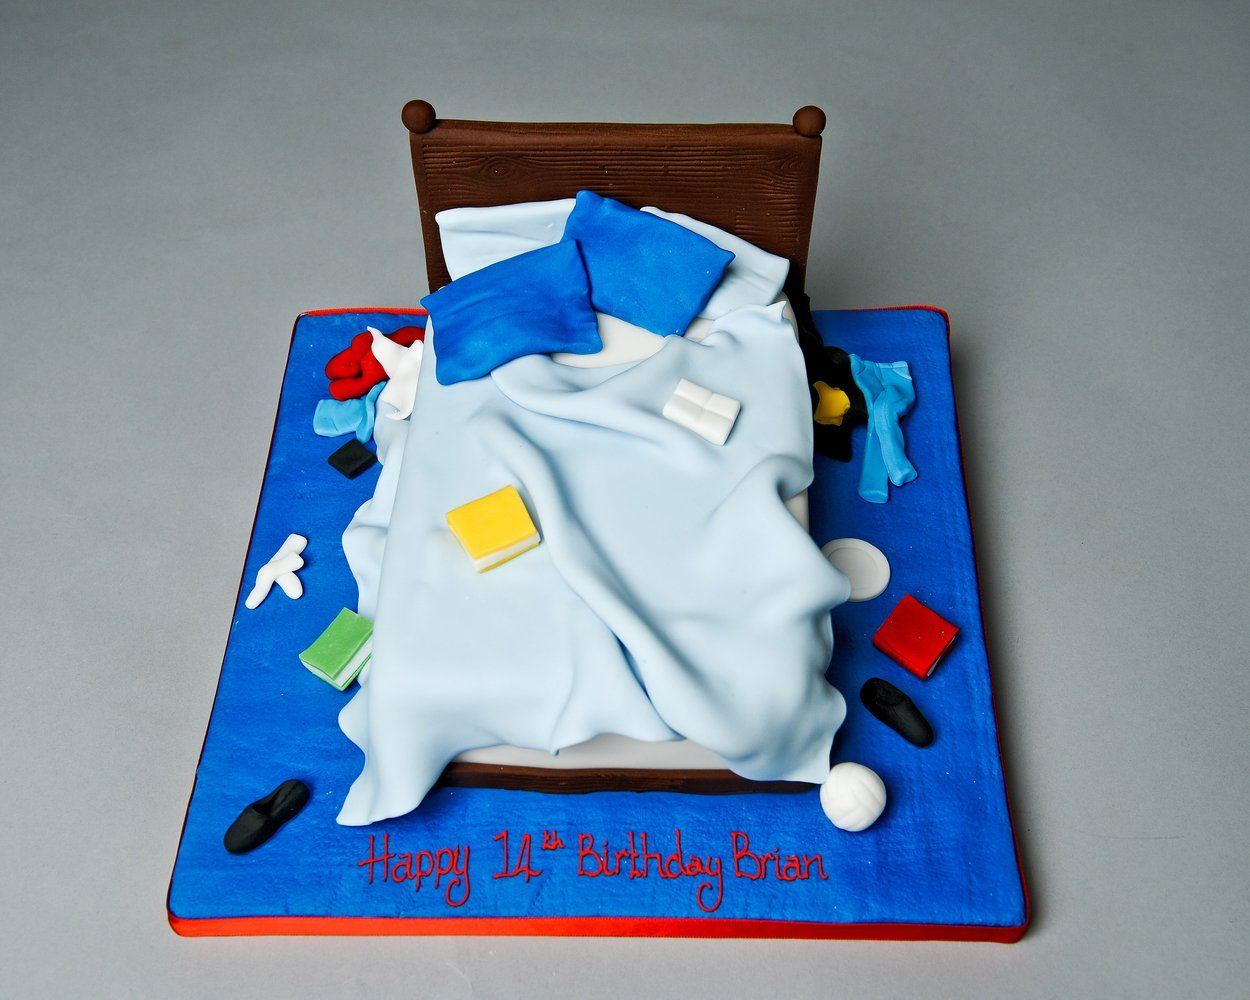 Cake Images For Boys : Boys Birthday Cakes To view some of our other birthday ...